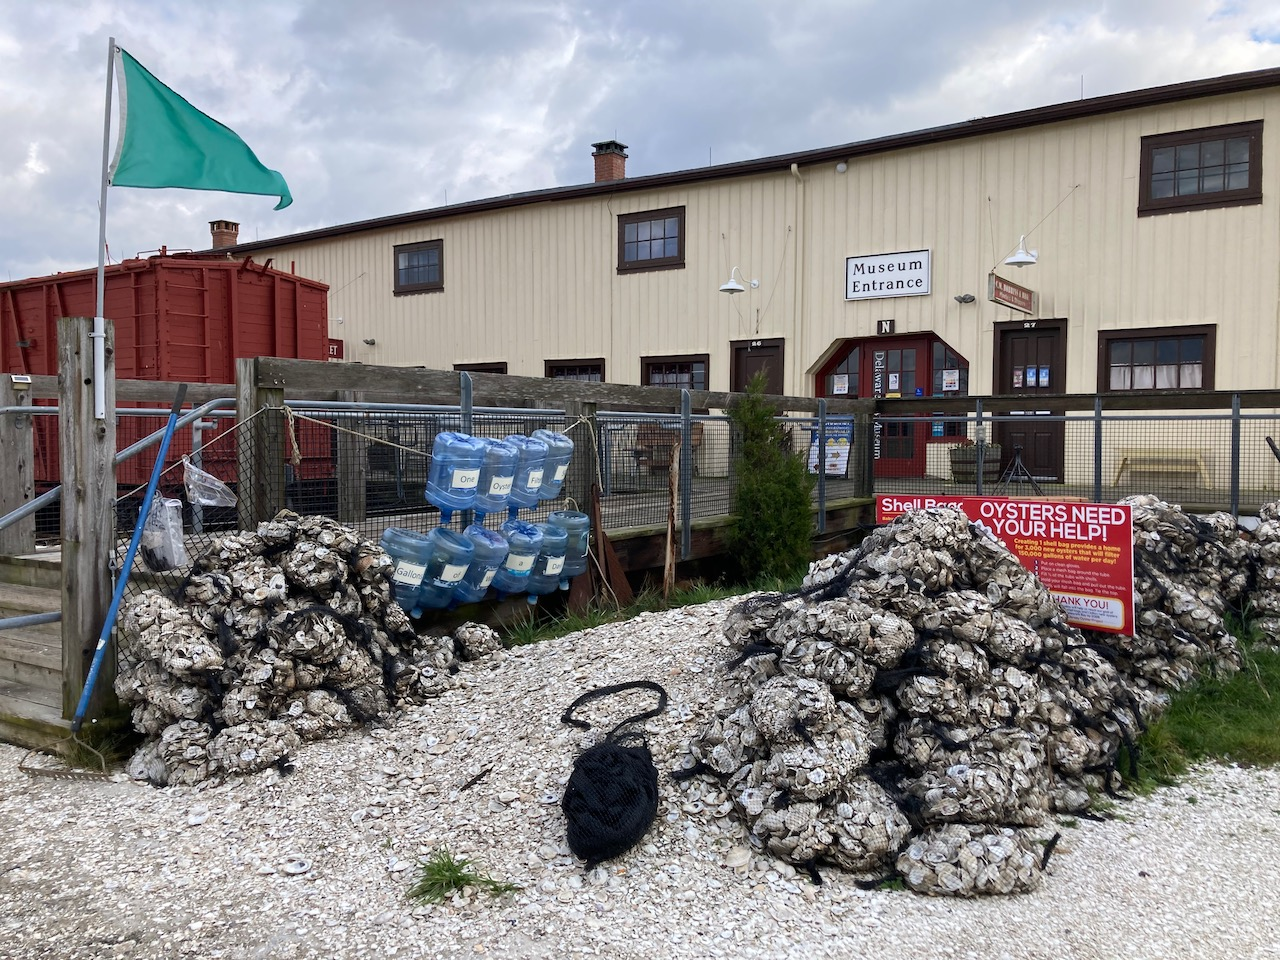 Bags of oysters beside museum entrance.